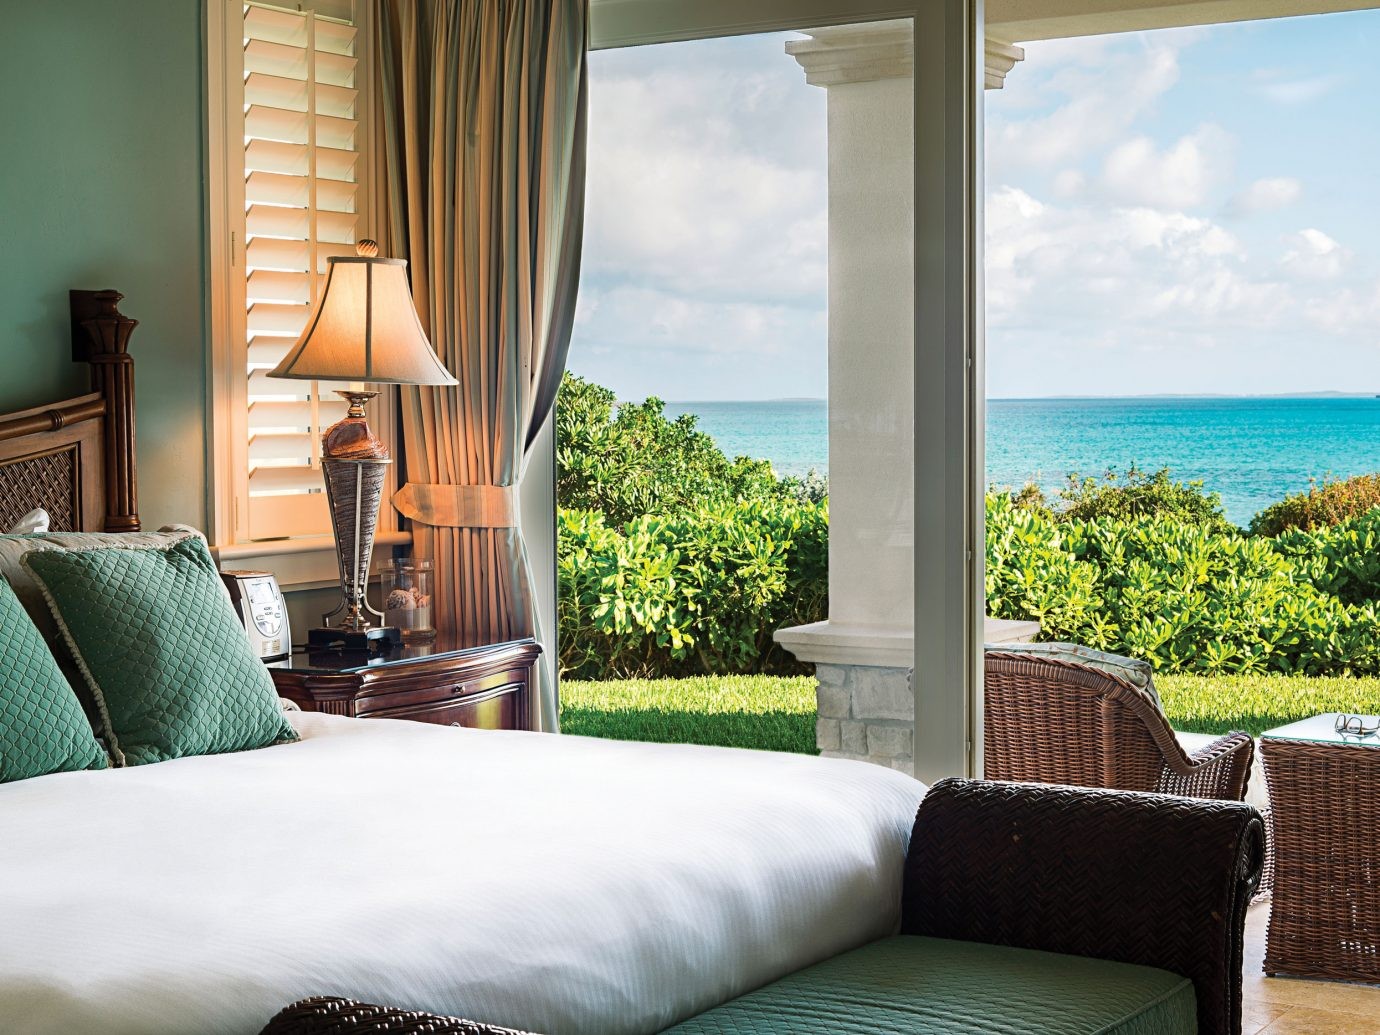 Guestroom at Great Exuma, Bahamas